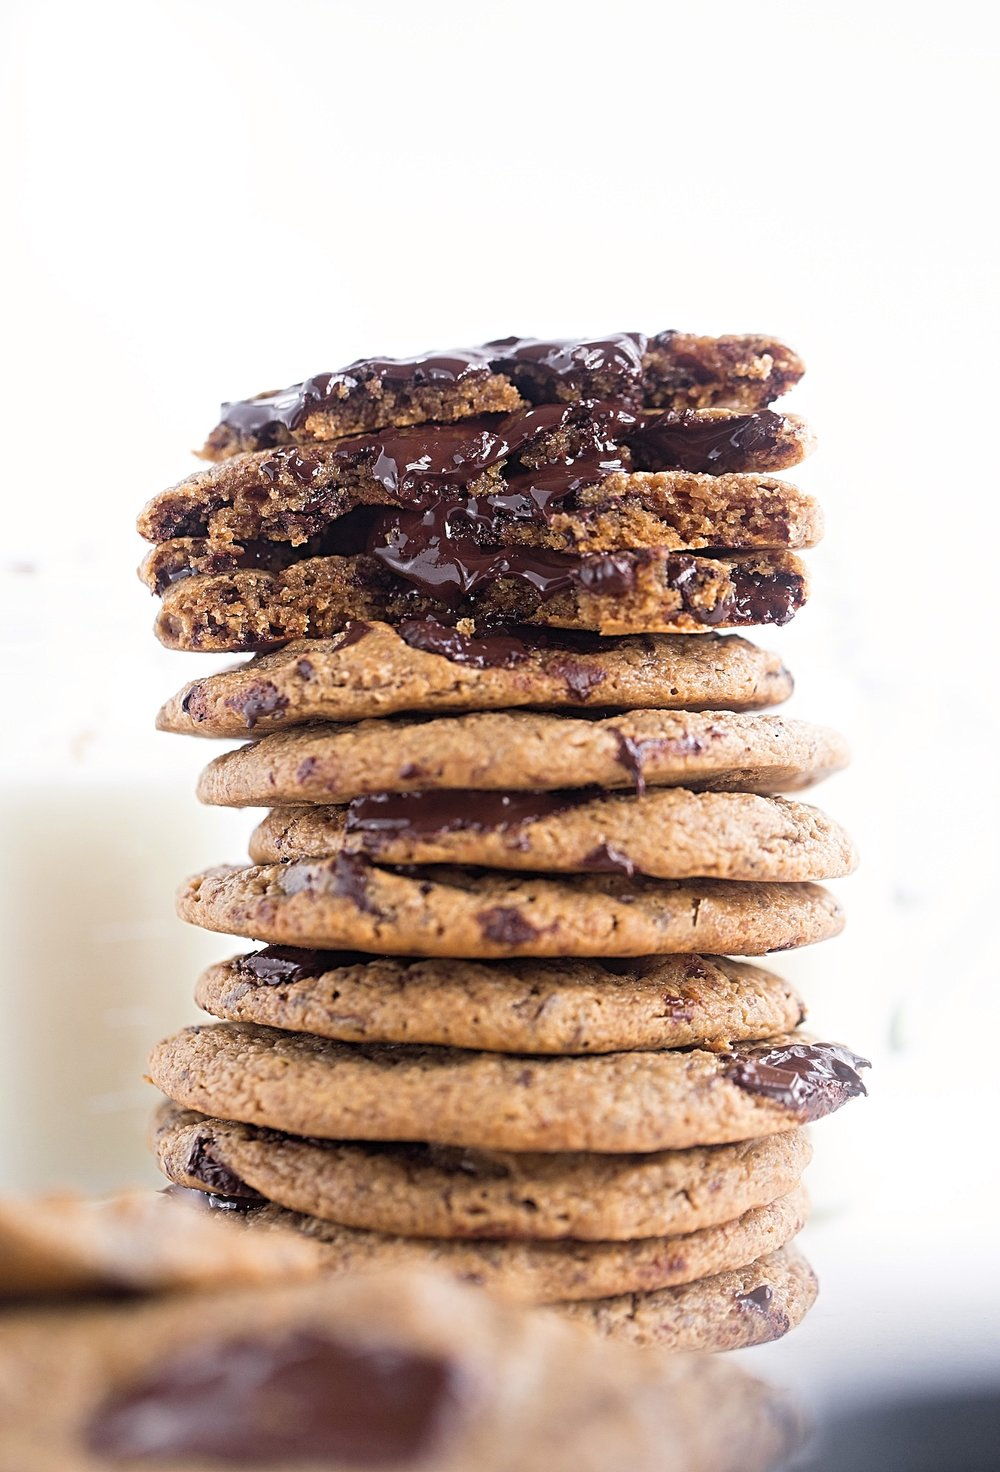 Flourless Nut Butter Chocolate Chip Cookies: soft, rich, stick-to-your-teeth chewy cookies packed with oozing chunks of chocolate. Gluten and dairy free! | TrufflesandTrends.com